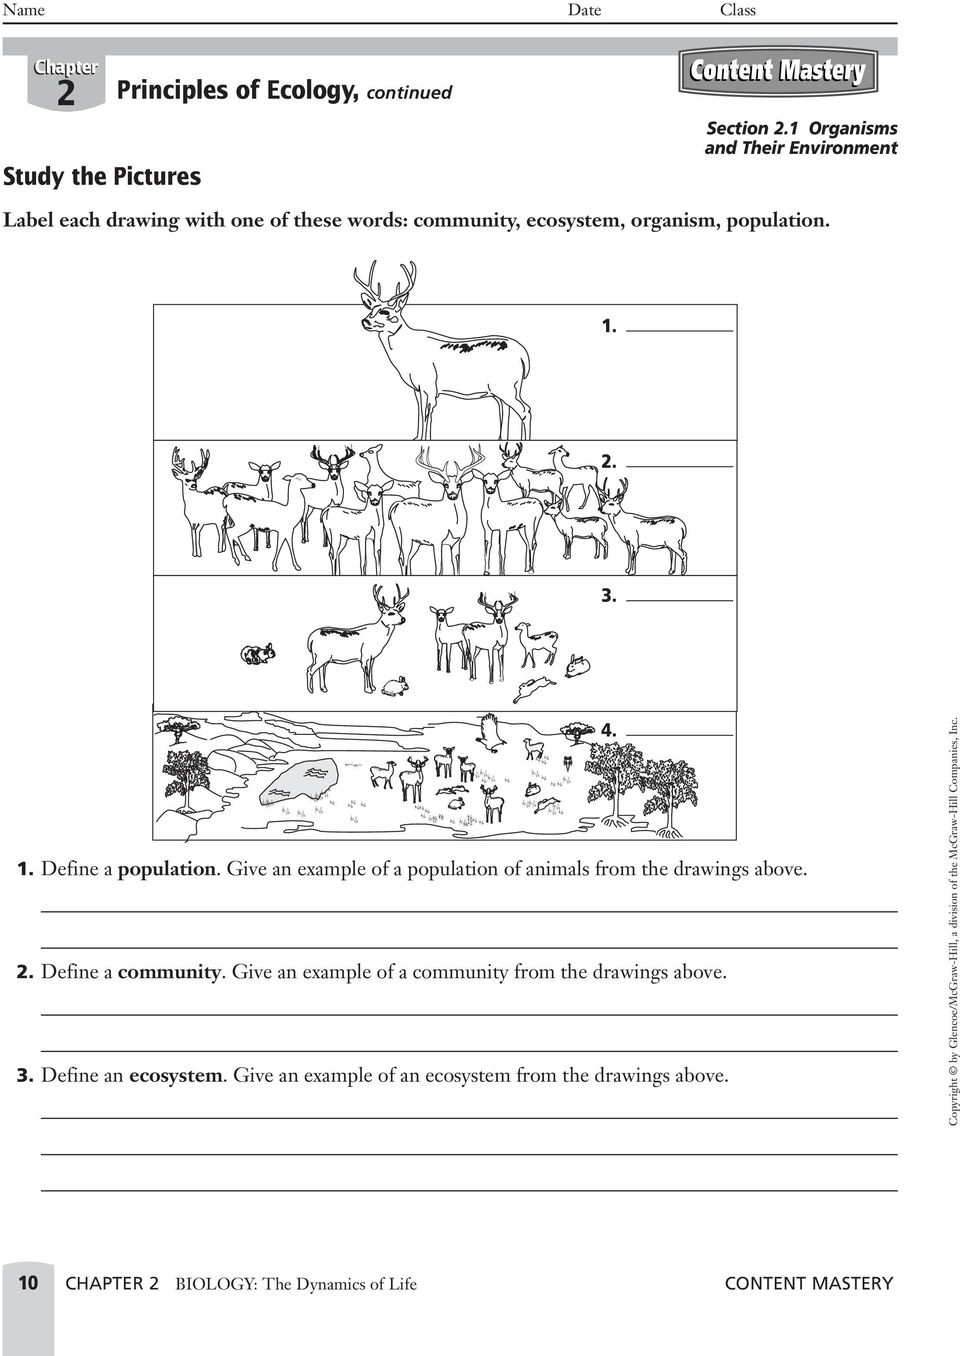 Sample answer: The deer are a population.. Define a community. Give an example of a community from the drawings above. A community is made up of populations that interact with each other.